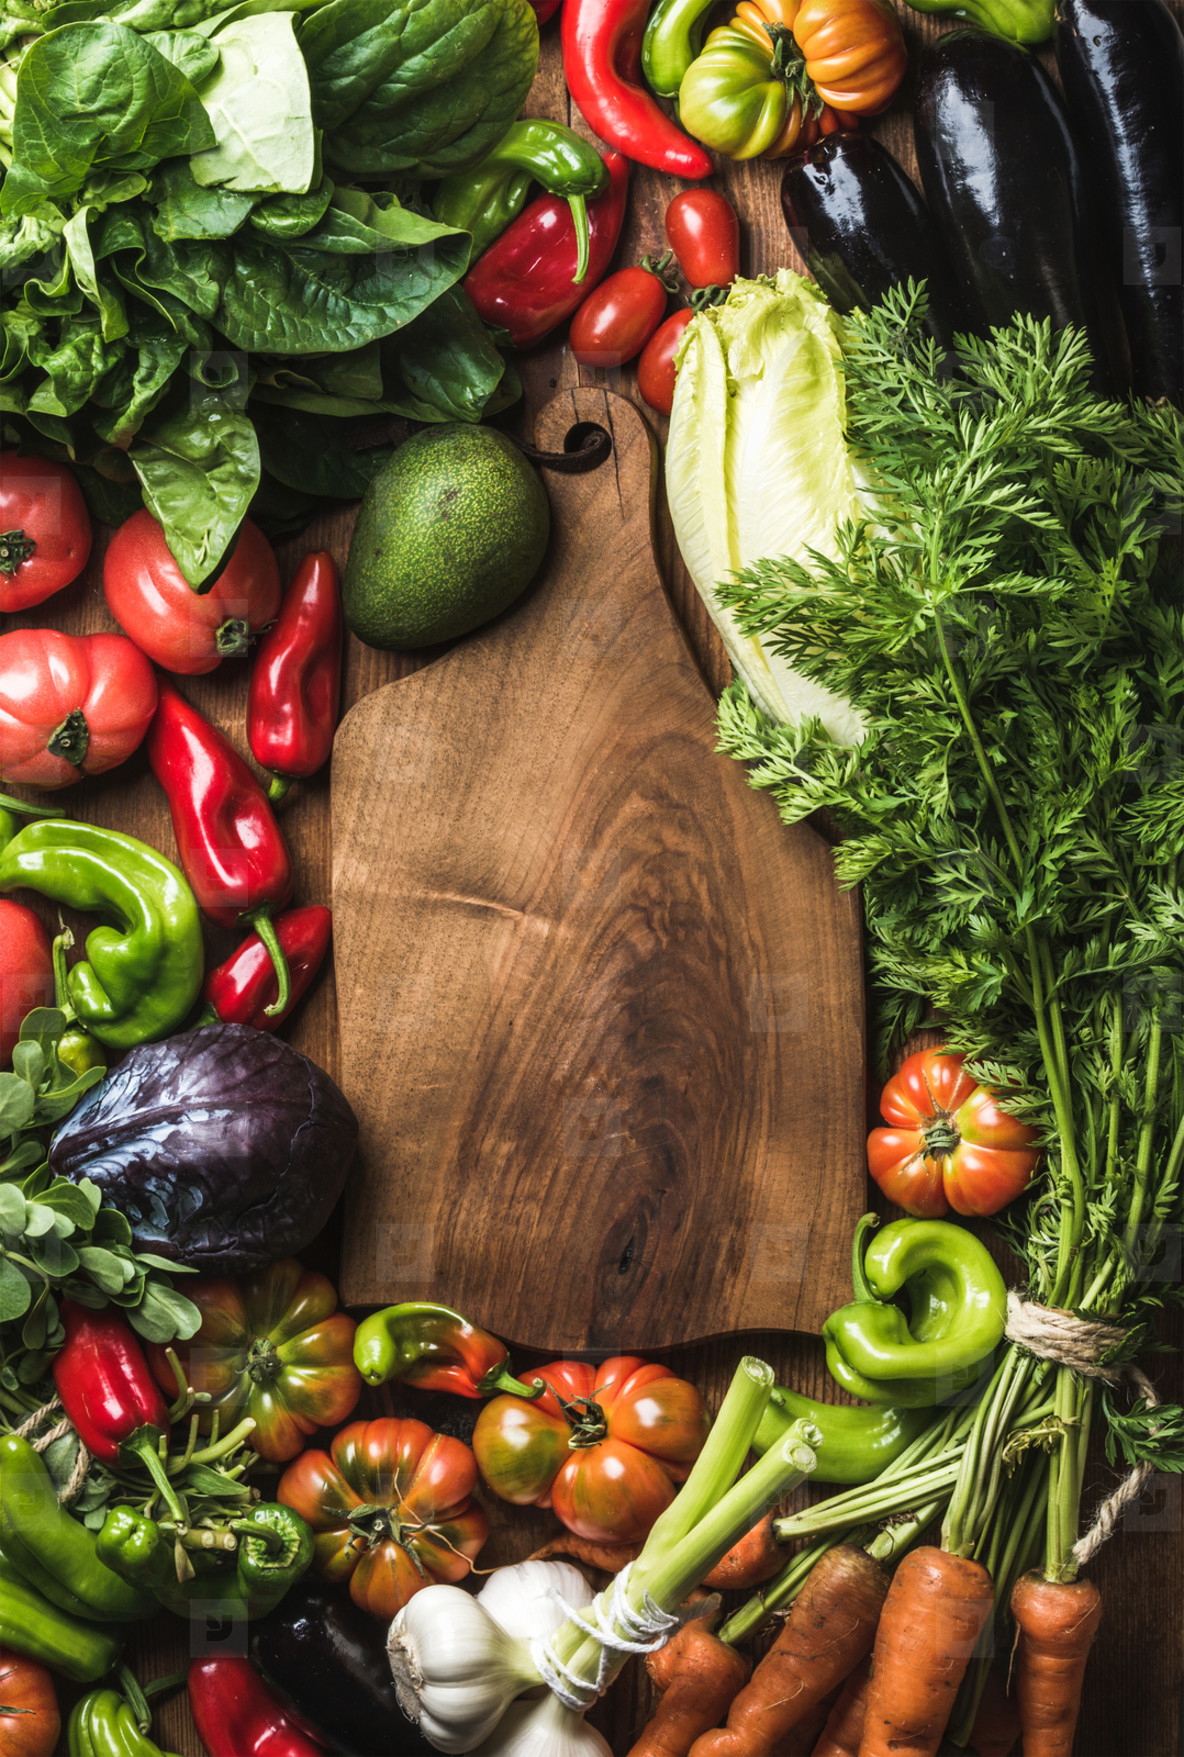 Fresh raw vegetable ingredients for healthy cooking or salad making with rustic wood board in center  top view  copy space  vertical composition